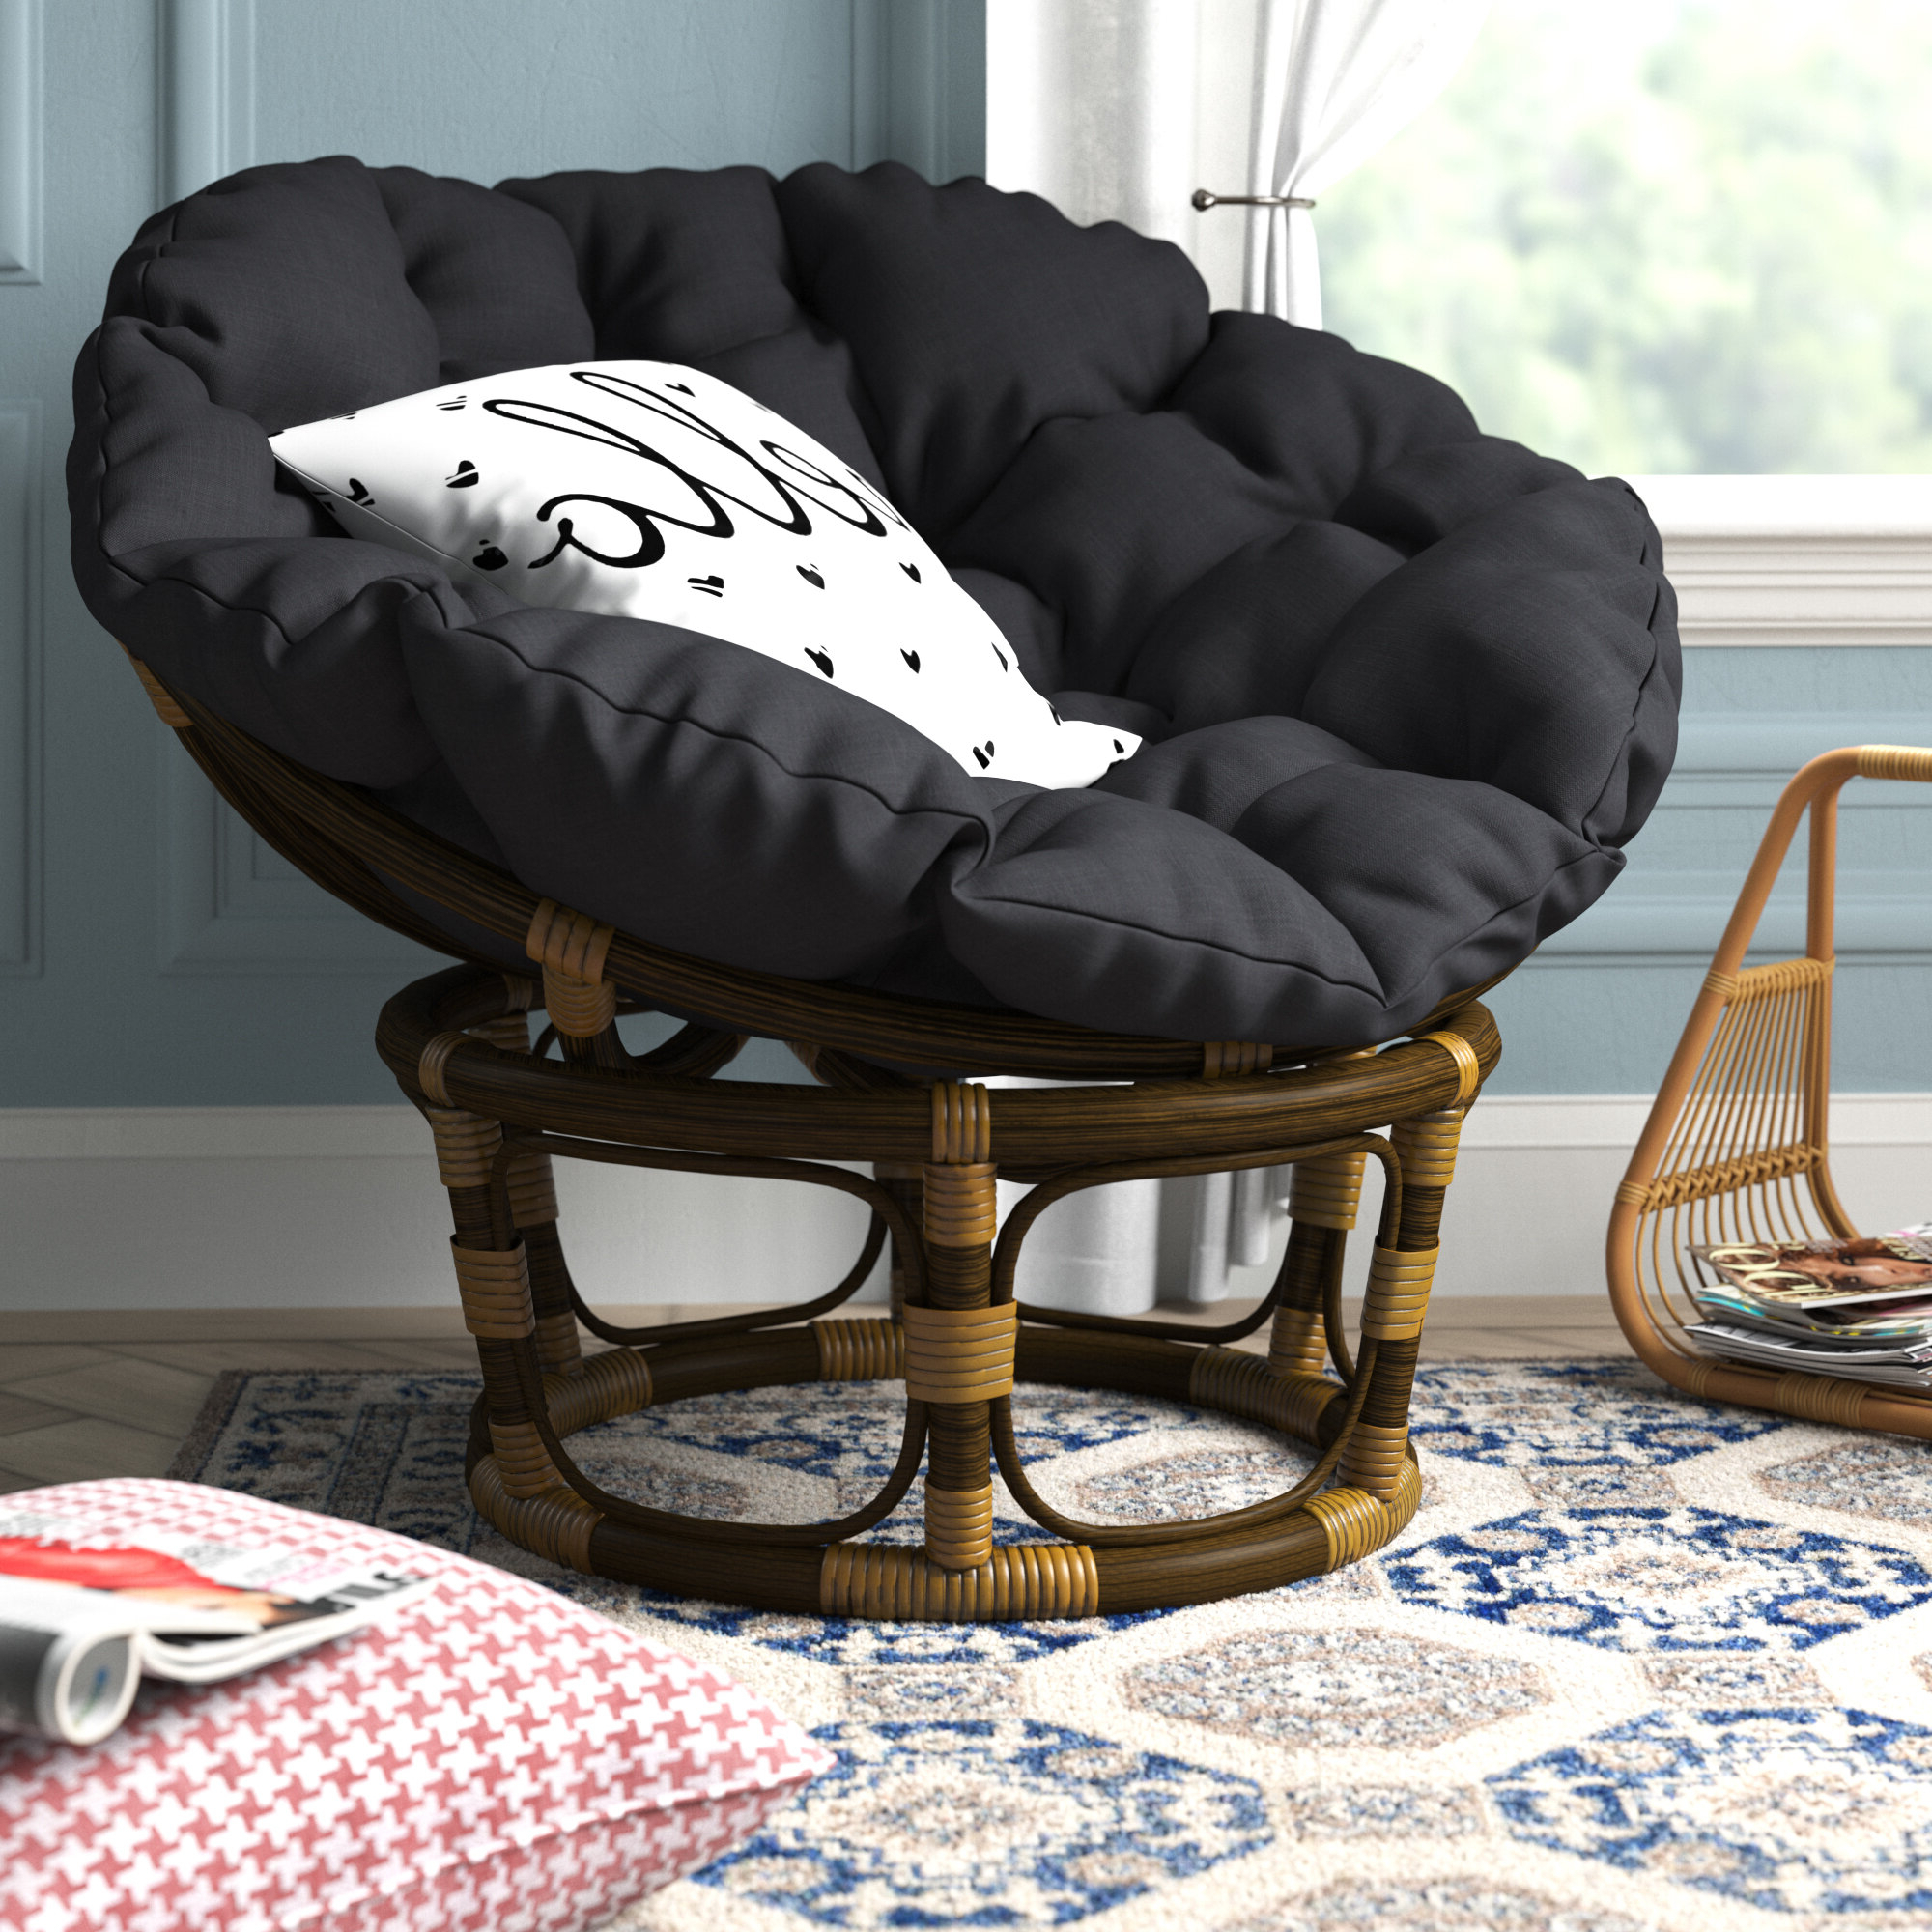 [%accent Chairs | Up To 60% Off Through 01/05 Inside Favorite Orndorff Tufted Papasan Chairs|orndorff Tufted Papasan Chairs Intended For Most Up To Date Accent Chairs | Up To 60% Off Through 01/05|fashionable Orndorff Tufted Papasan Chairs In Accent Chairs | Up To 60% Off Through 01/05|latest Accent Chairs | Up To 60% Off Through 01/05 With Regard To Orndorff Tufted Papasan Chairs%] (View 5 of 20)